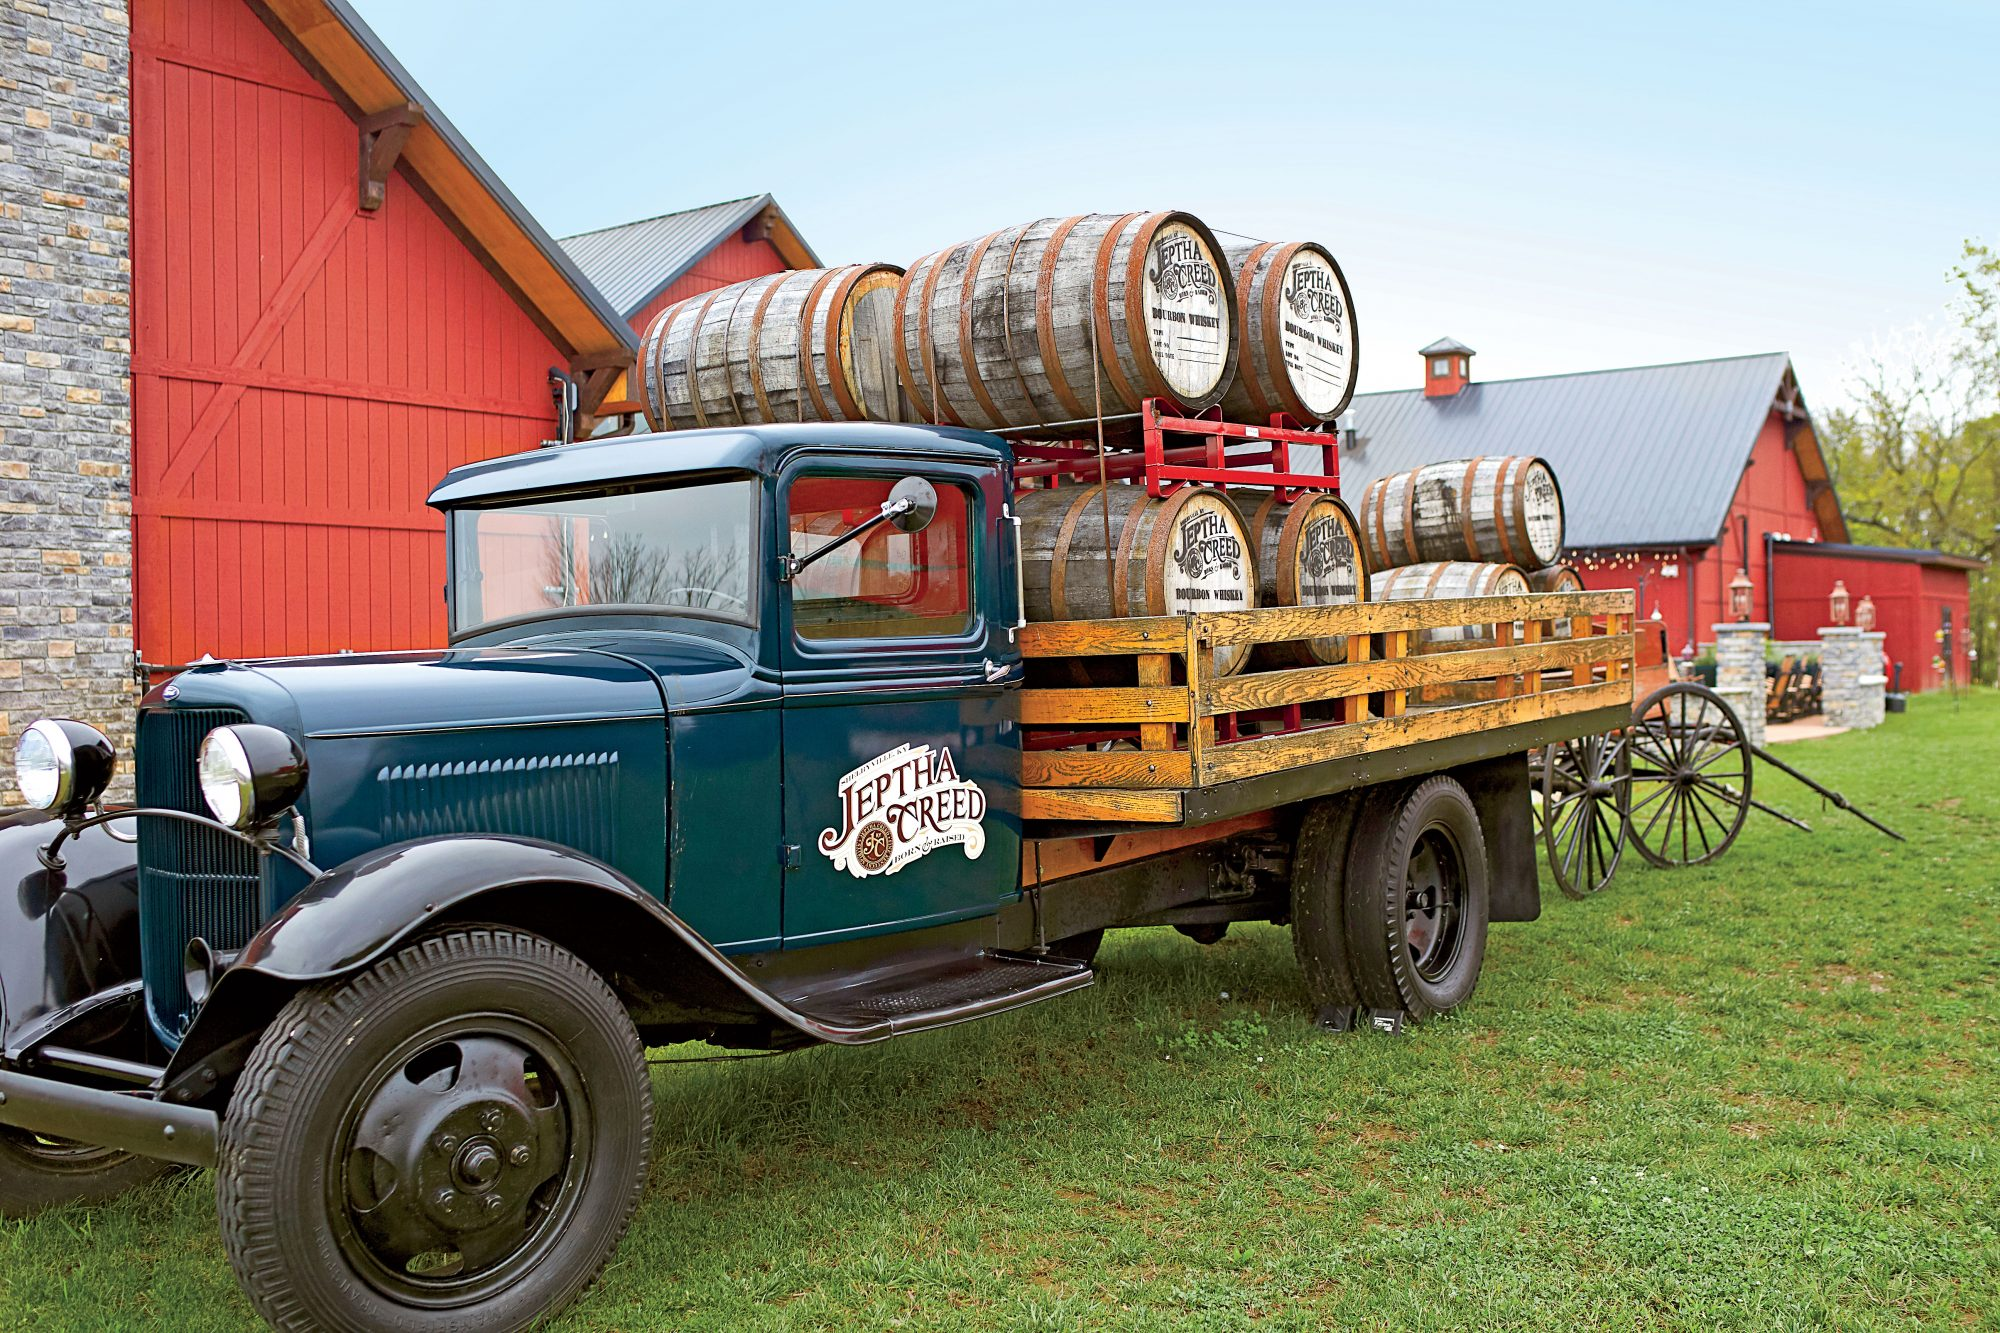 Jeptha Creed Distillery Vintage Truck